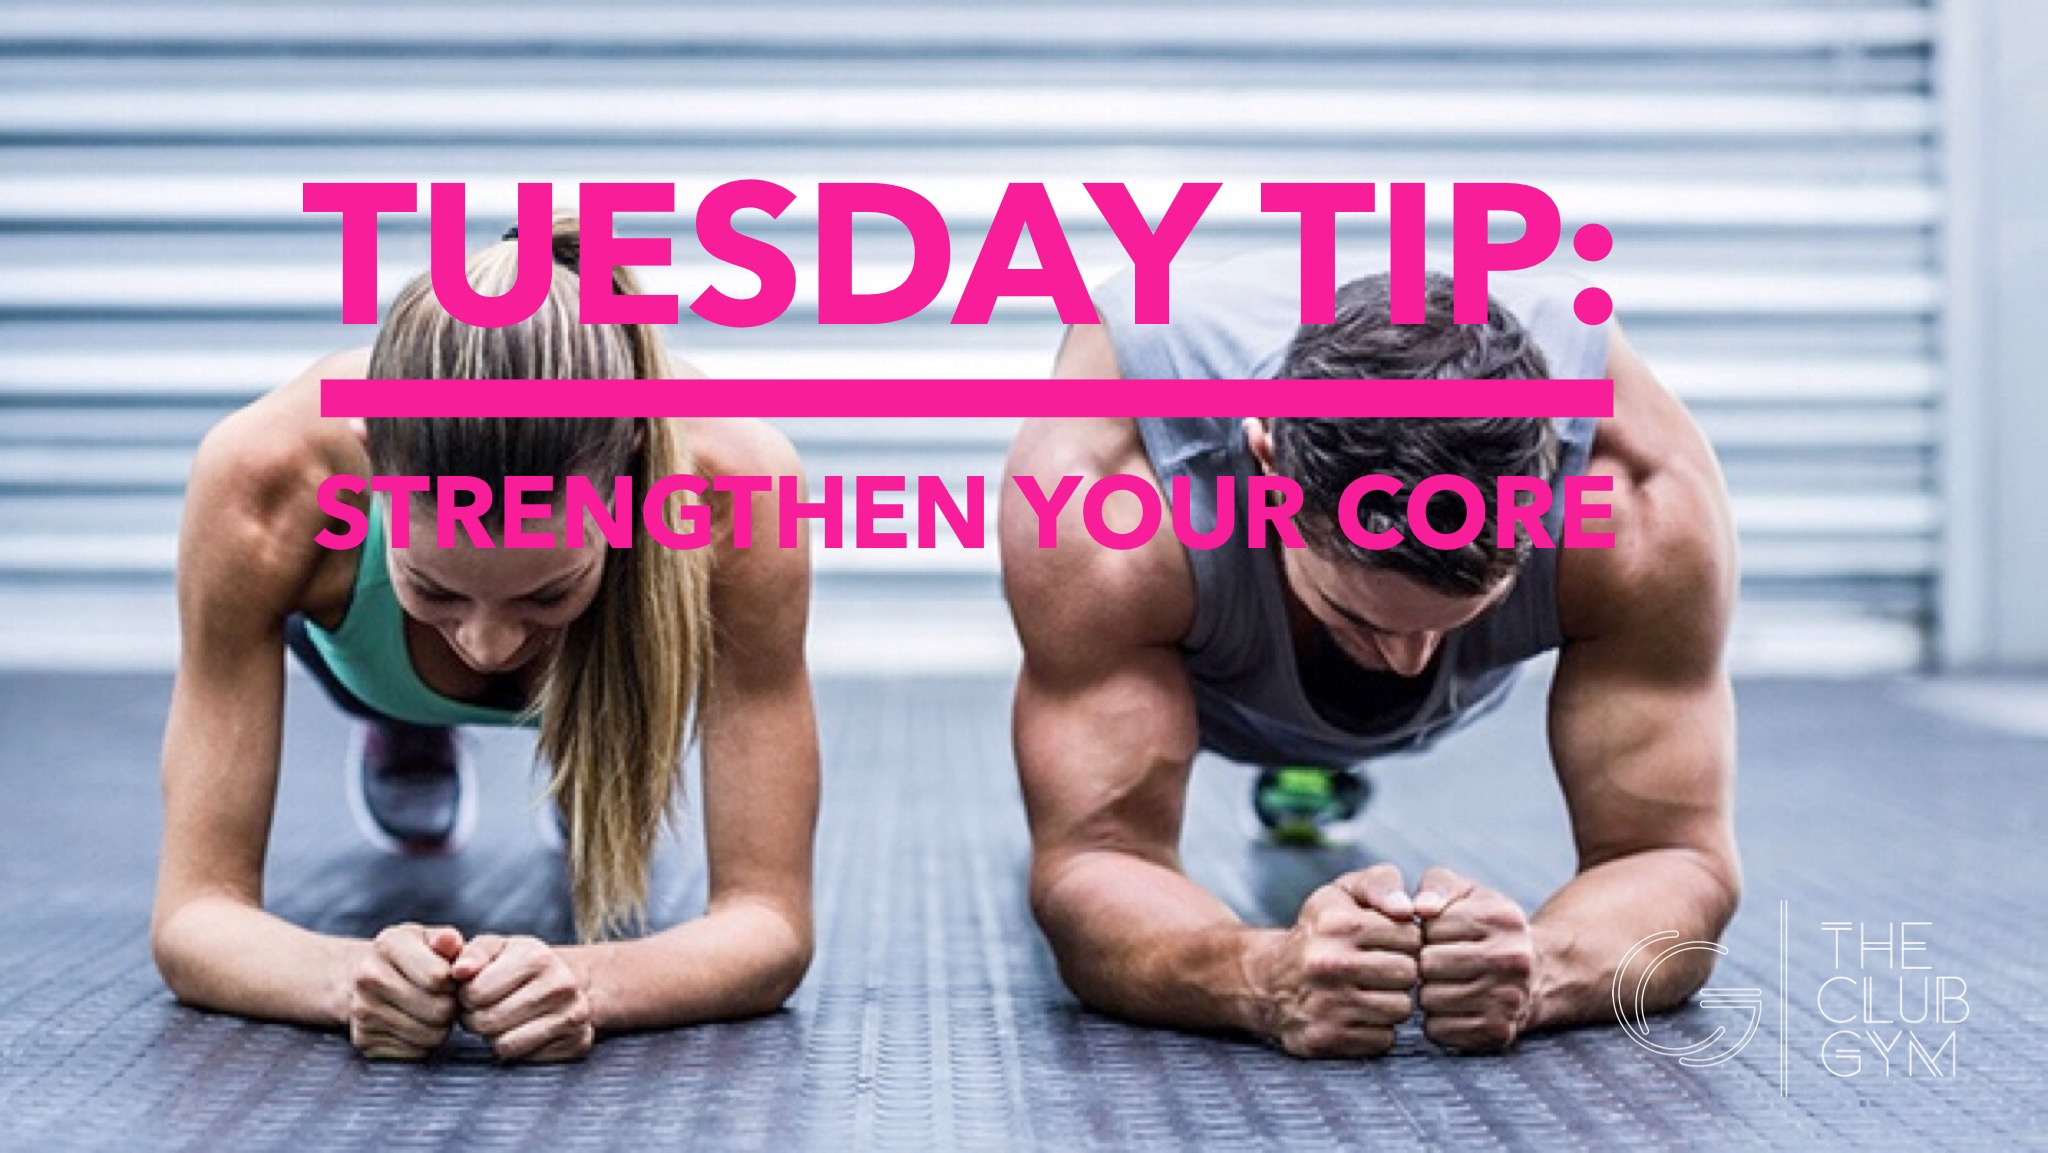 Strengthen Your Core - The Club Gym